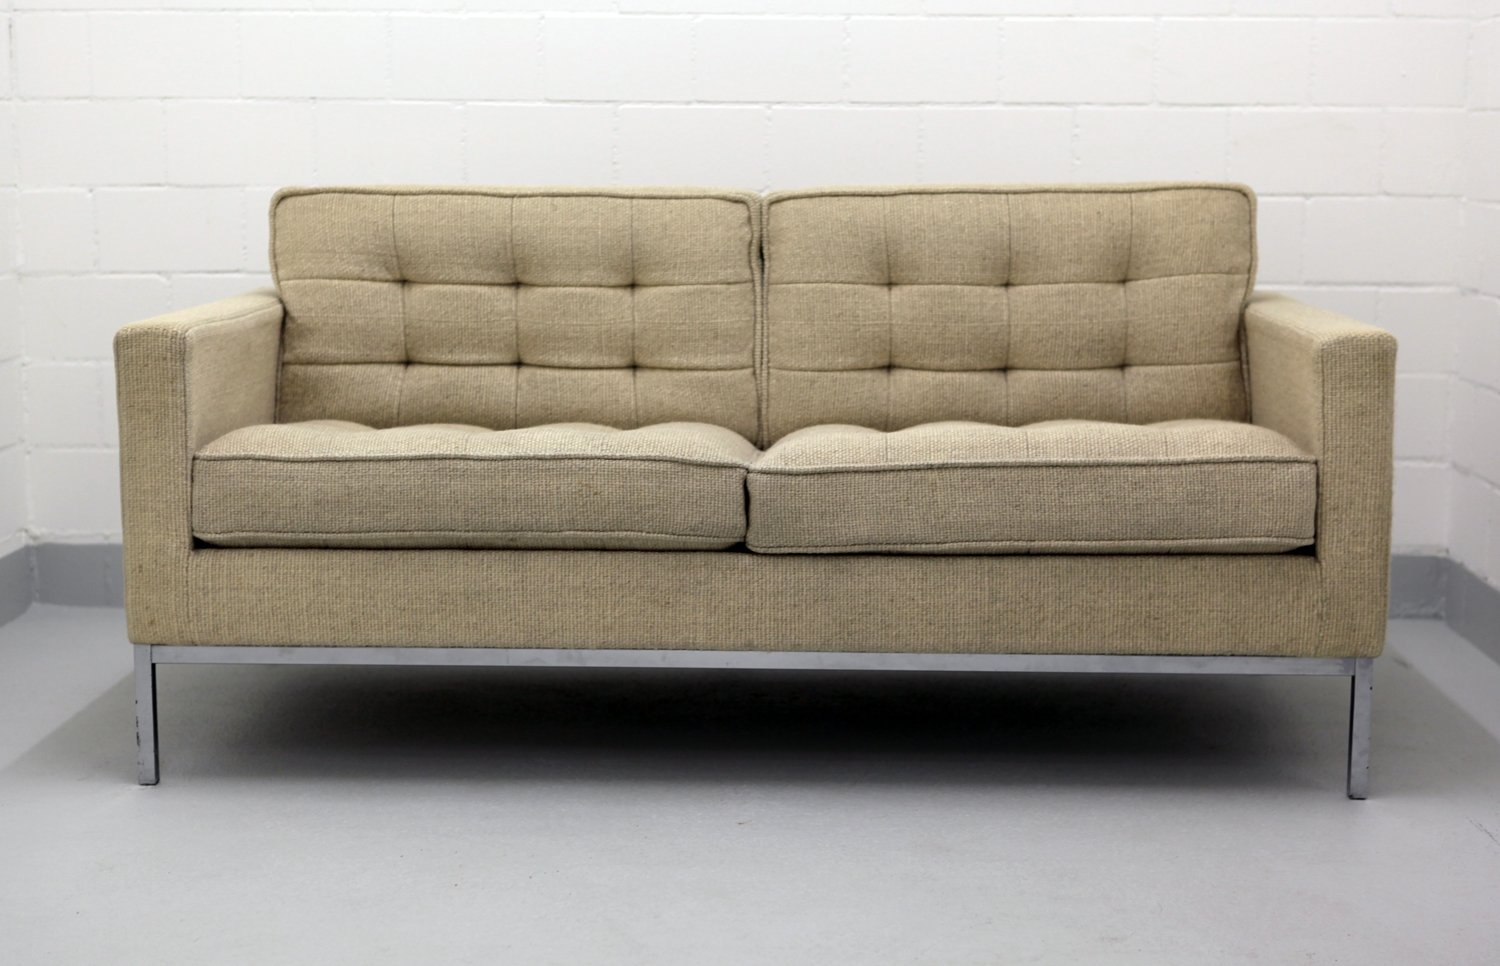 Two Seater Chrome And Wool Sofa By Florence Knoll For Knoll, 1970s